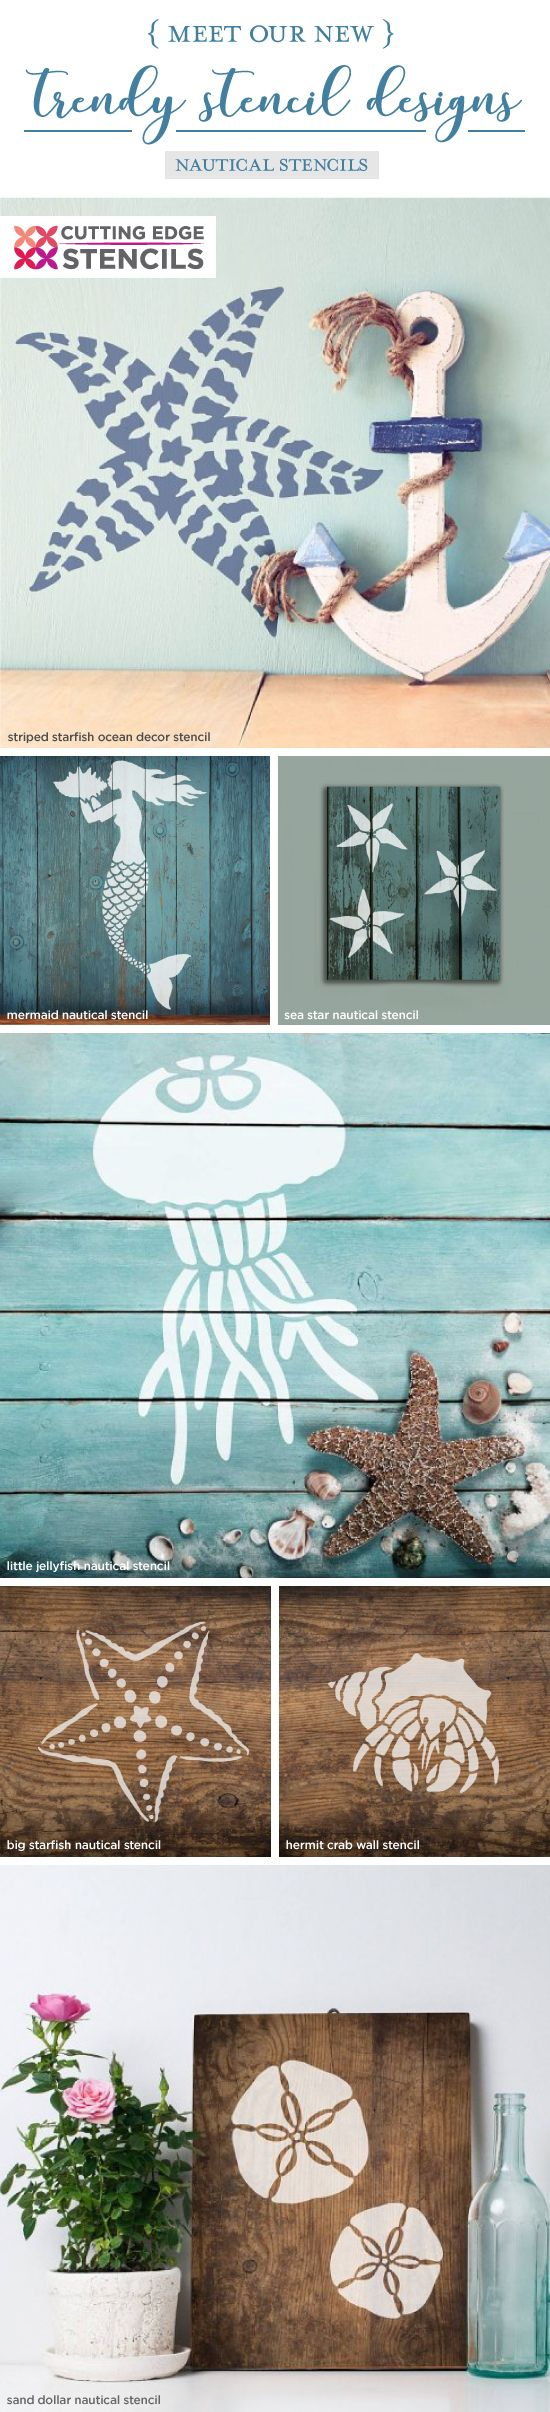 Cutting Edge Stencils shares a New wall stencil collection that includes beach inspired and nautical patterns for walls, furniture, and crafts. http://www.cuttingedgestencils.com/wall-stencils-stencil-designs.html